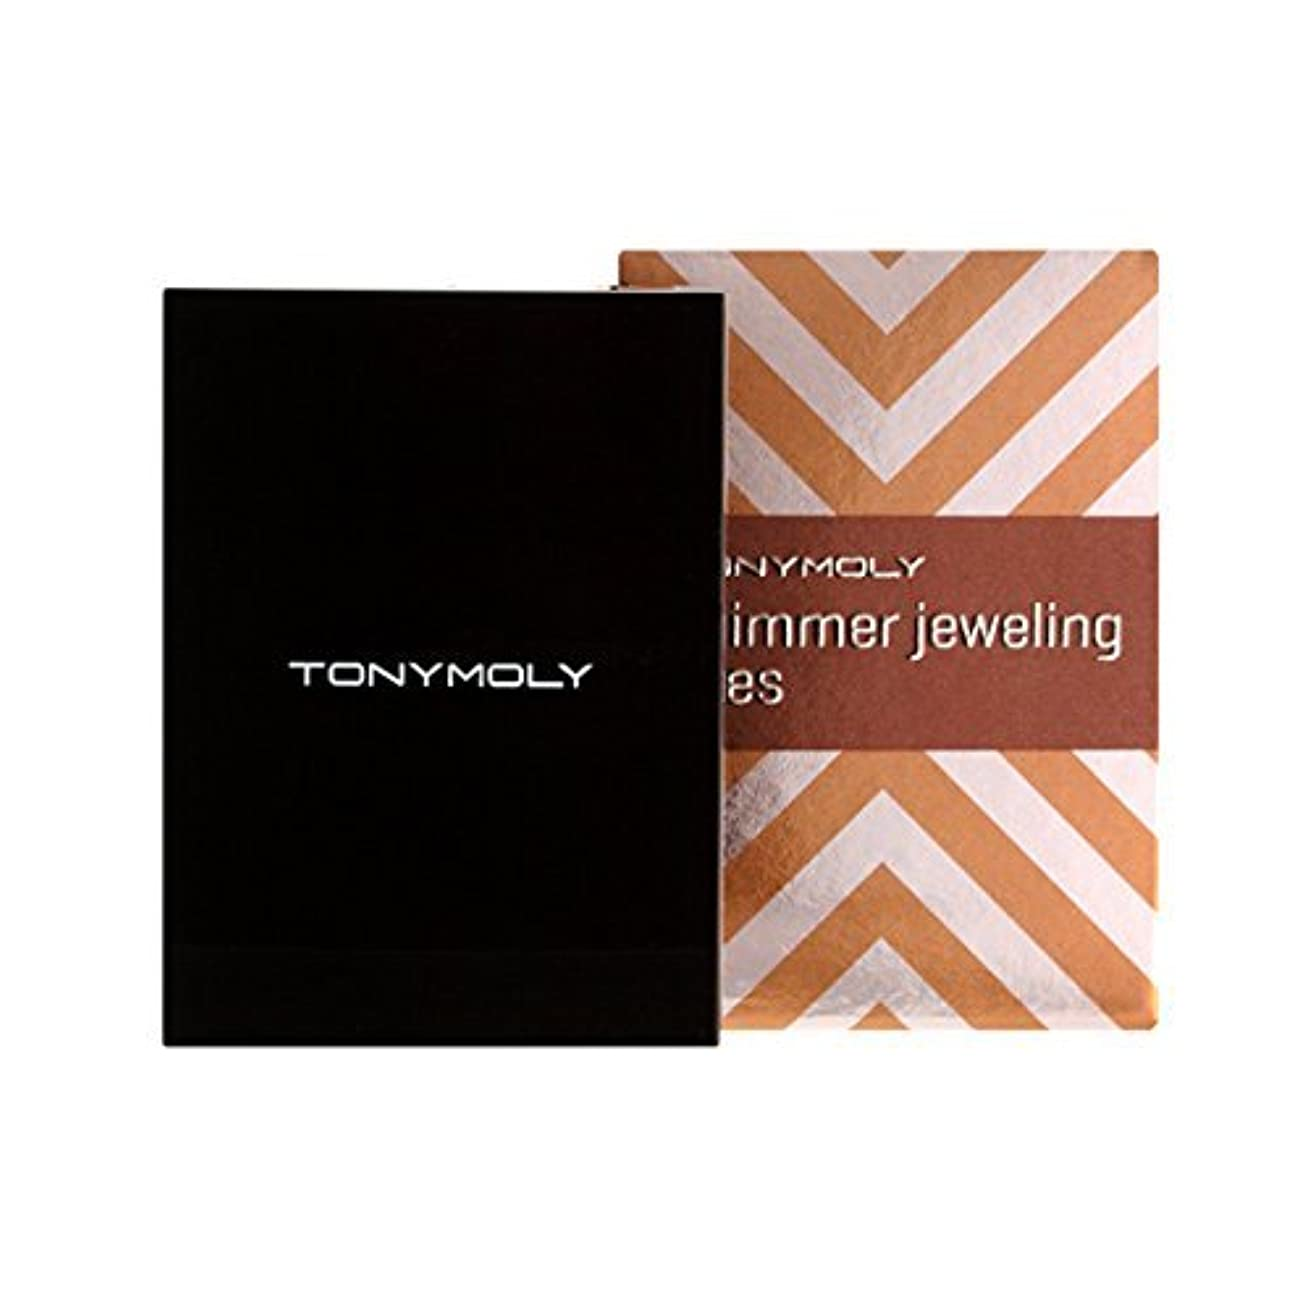 有料カウンタ狂った[Tonymoly] トニーモリ Shimmer Jeweling Eyes 2.7g #01 Gold Jeweling by TONYMOLY